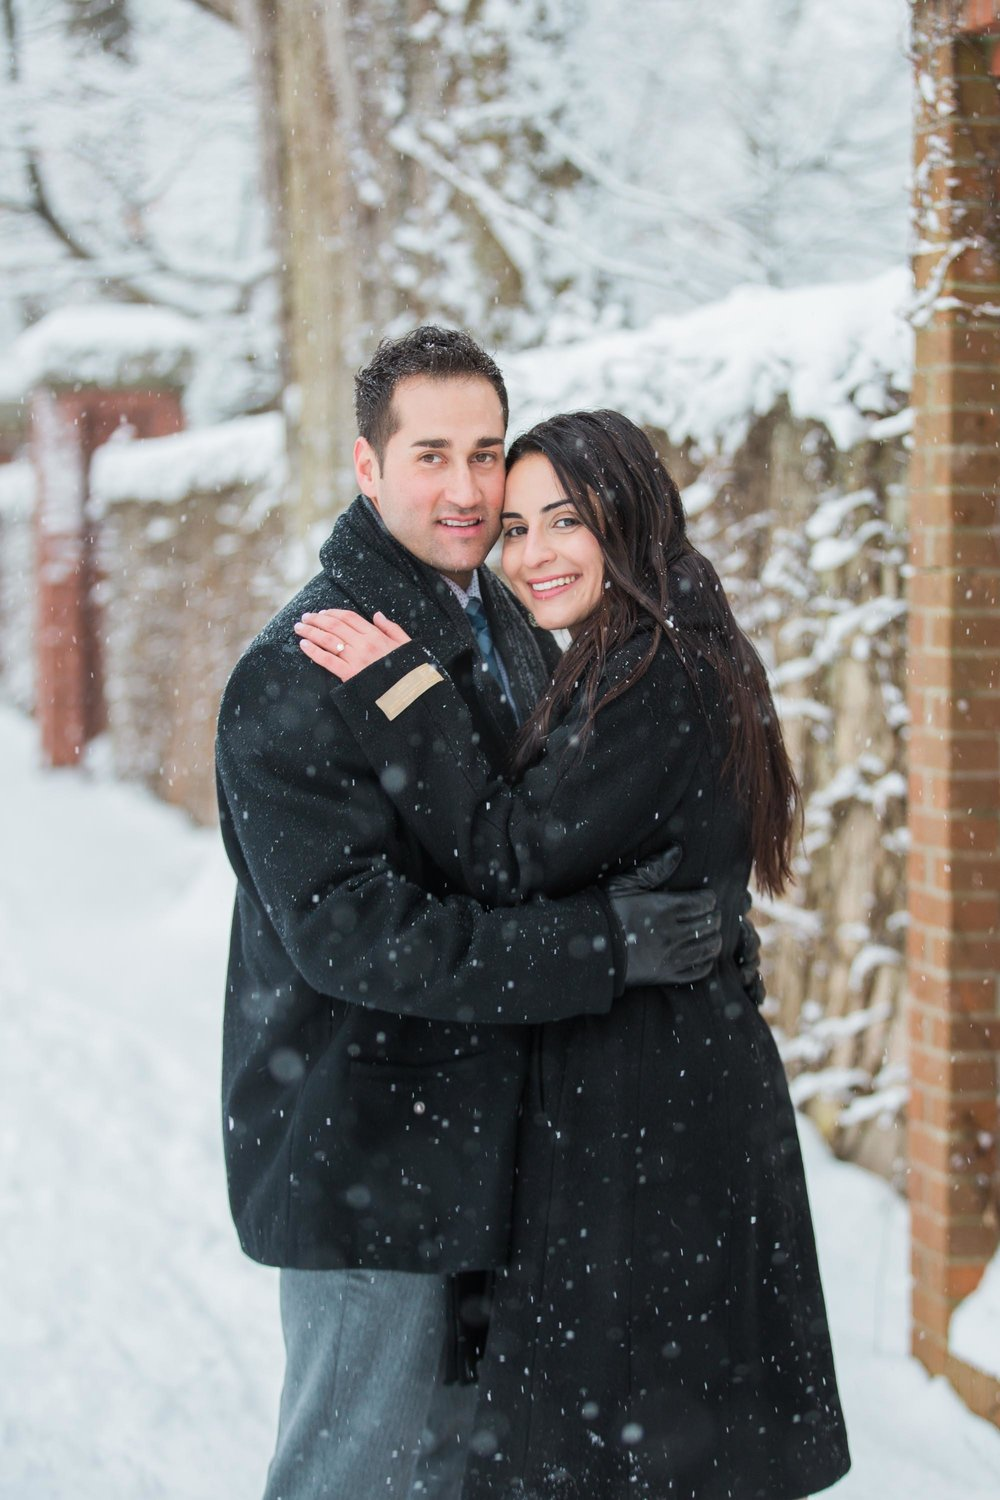 nataschia_wielink_photography_niagara_on_the_lake_engagement_session_vanessa_matt 0017 .JPG